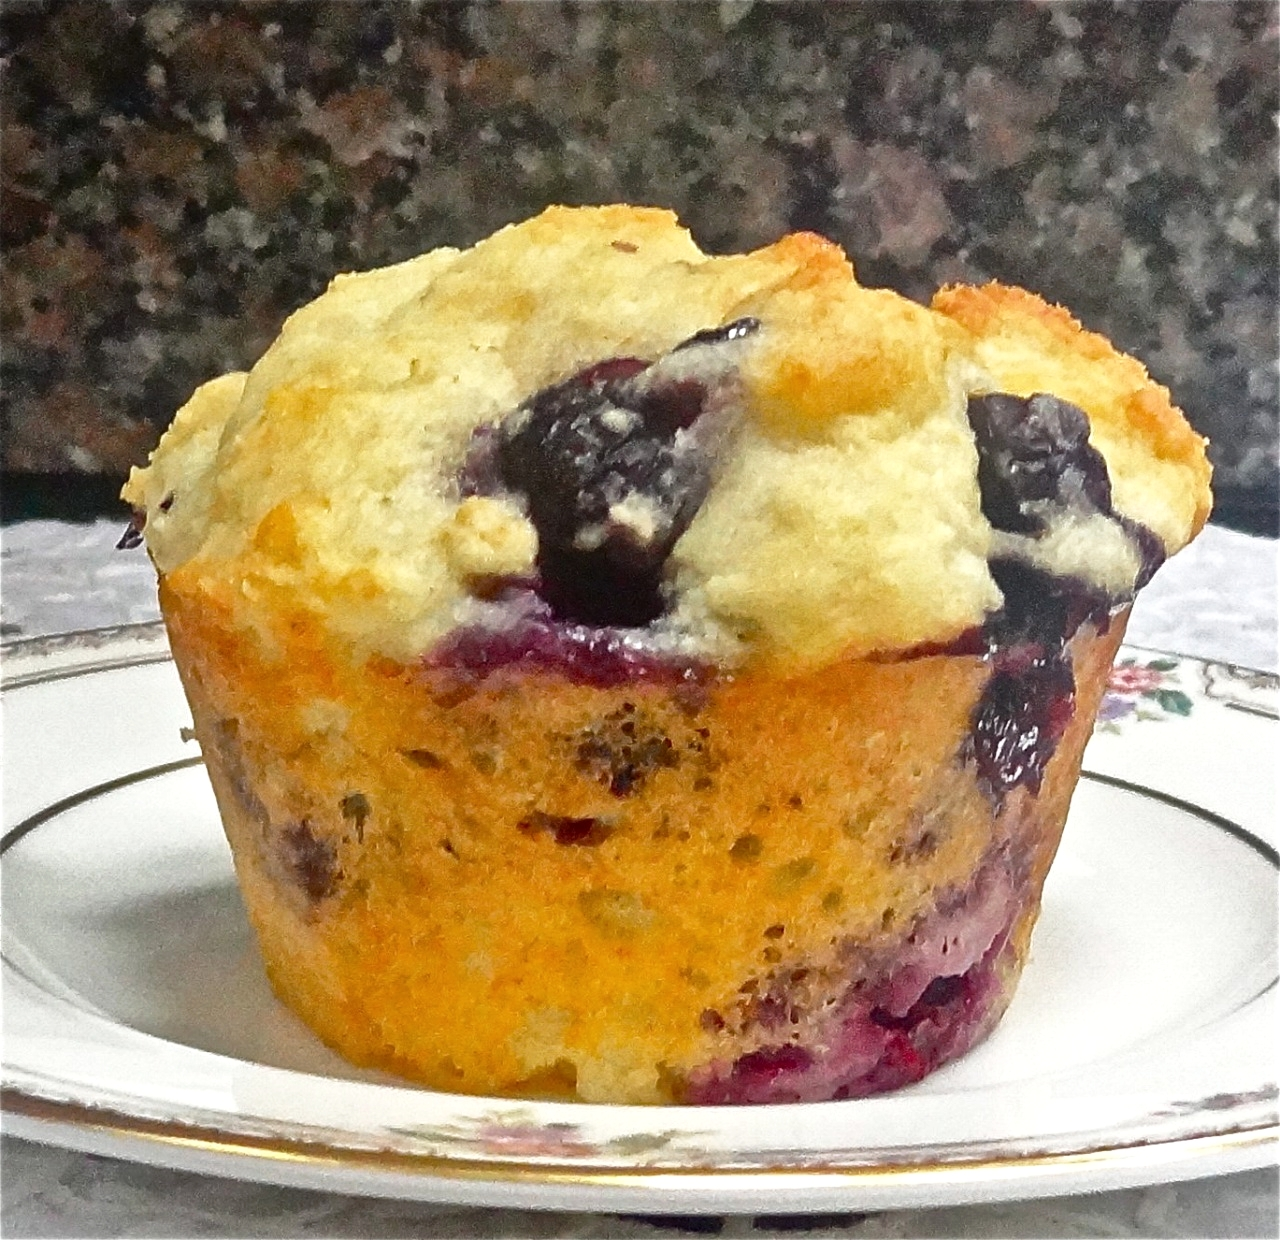 A few days ago I posted a recipe for gluten free blueberry muffins made with almond flour and oat bran. But a gluten free diet is not for everyone, so if you're like me and can't resist the tons of blueberries available now and buy them by the six-pack as I do, and you also love blueberry muffins in the summer when the berries are so fat and sweet, here's a really simple recipe for traditional blueberry muffins. These are plain, vanilla-y flavored. You can add a teaspoon of grated fresh lemon peel or orange peel for a more citrusy taste. You can also add a half cupful of chopped nuts. Blueberry Yogurt Muffins 4 tablespoons unsalted butter 1-3/4 cups all-purpose flour 1/4 cup sugar 1-1/2 teaspoons baking powder 3/4 teaspoon salt 1/2 teaspoon baking soda 1 cup plain yogurt 1 large egg 1 teaspoon vanilla extract 1 cup blueberries Preheat the oven to 400 degrees. Lightly grease 10 muffin cups. Melt the butter and set it aside. Mix the flour, sugar, baking powder, salt and baking soda together in a bowl. In a second bowl, combine the yogurt, egg and vanilla extract and blend them thoroughly. Pour the liquid ingredients into the flour mixture and stir just to bend ingredients. Fold in the blueberries. Drop into the muffin cups. Bake for 20-25 minutes or until a cake tester inserted into the center comes out clean. Makes 10